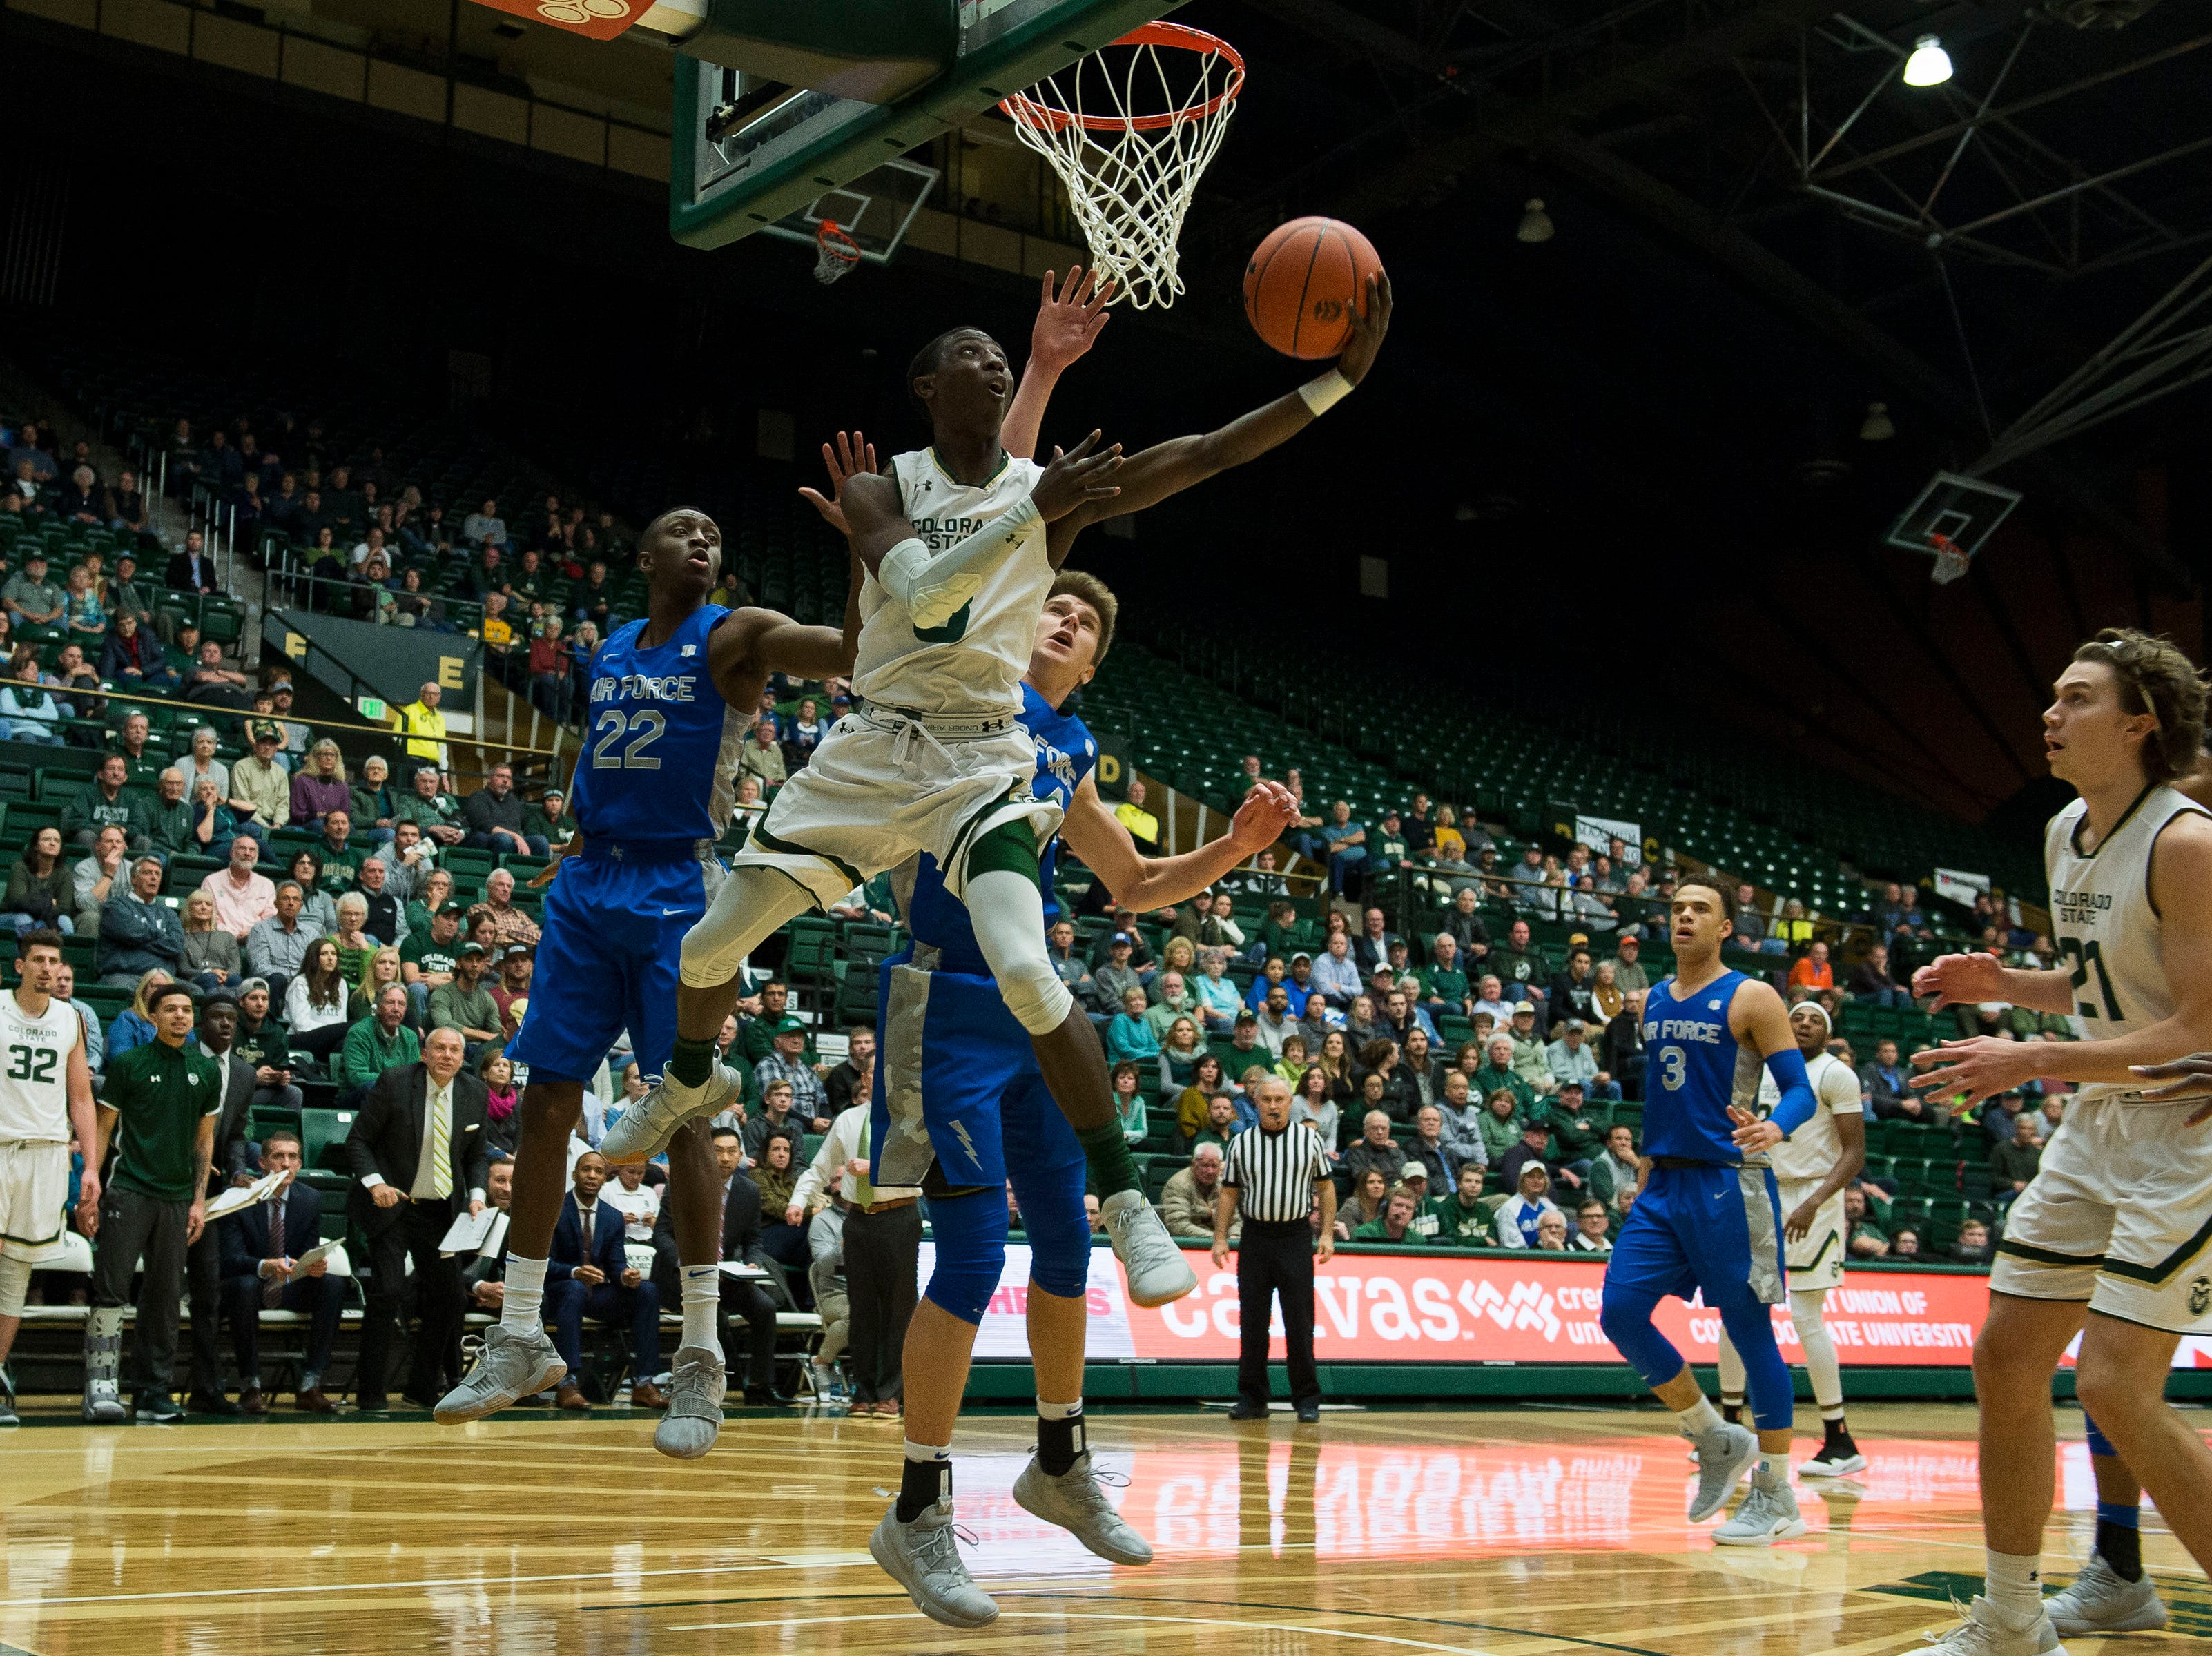 Colorado State University freshman guard Kendle Moore (3) goes under the net for a layup past Air Force Academy sophomore guard Keaton Van Soelen (44) on Tuesday, Jan. 8, 2019, at Moby Arena in Fort Collins, Colo.